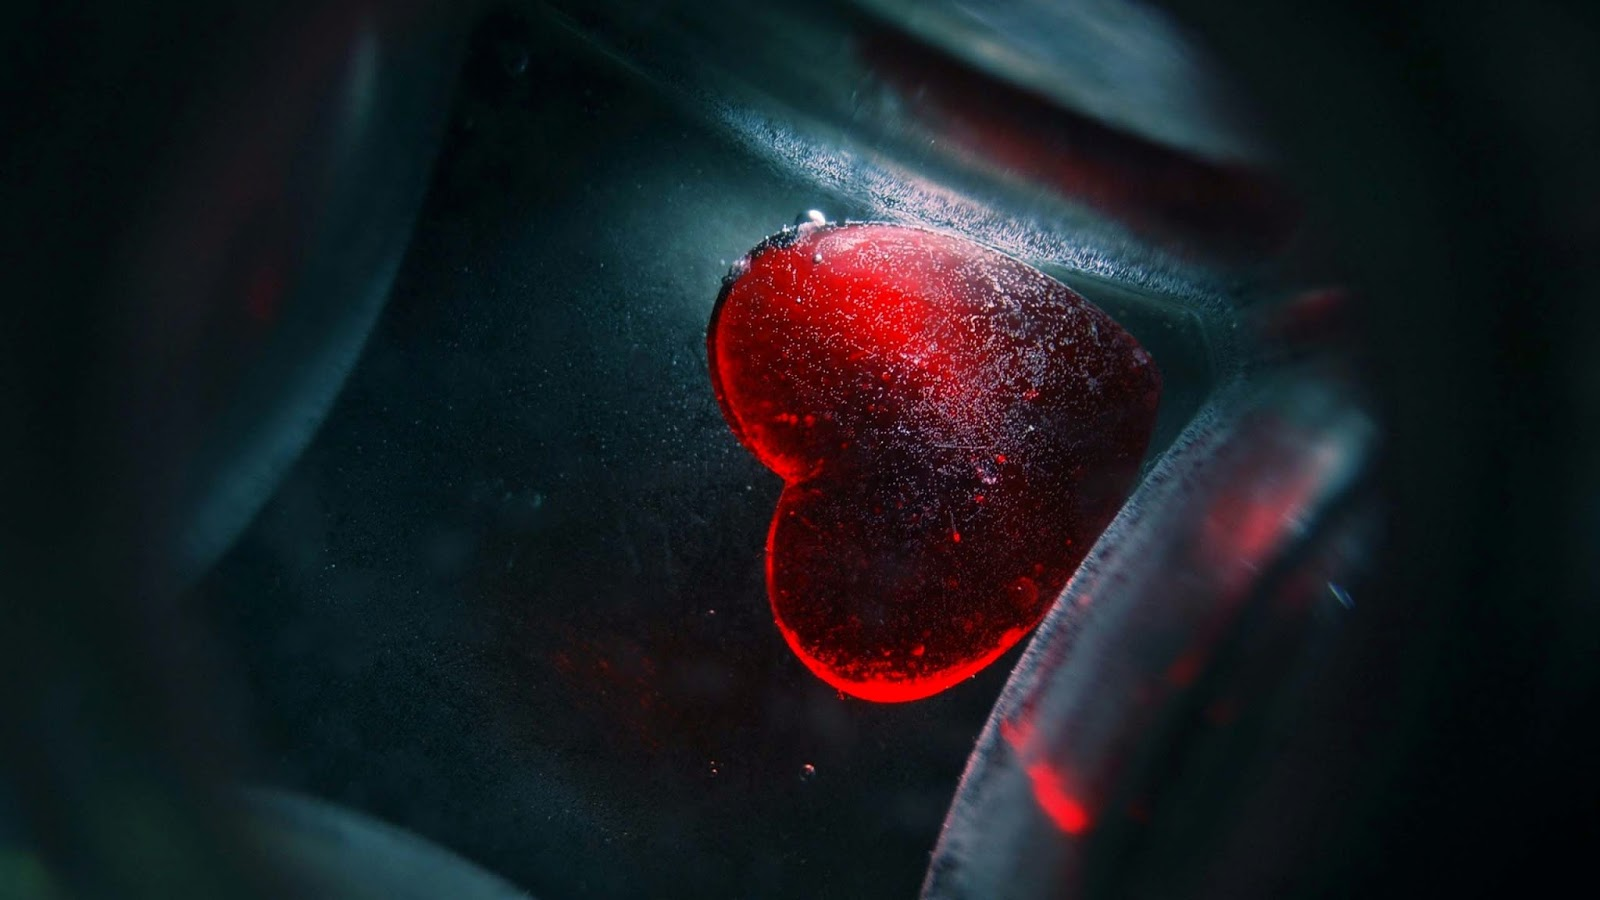 Sunken-Heart-love-hd-wallpaper